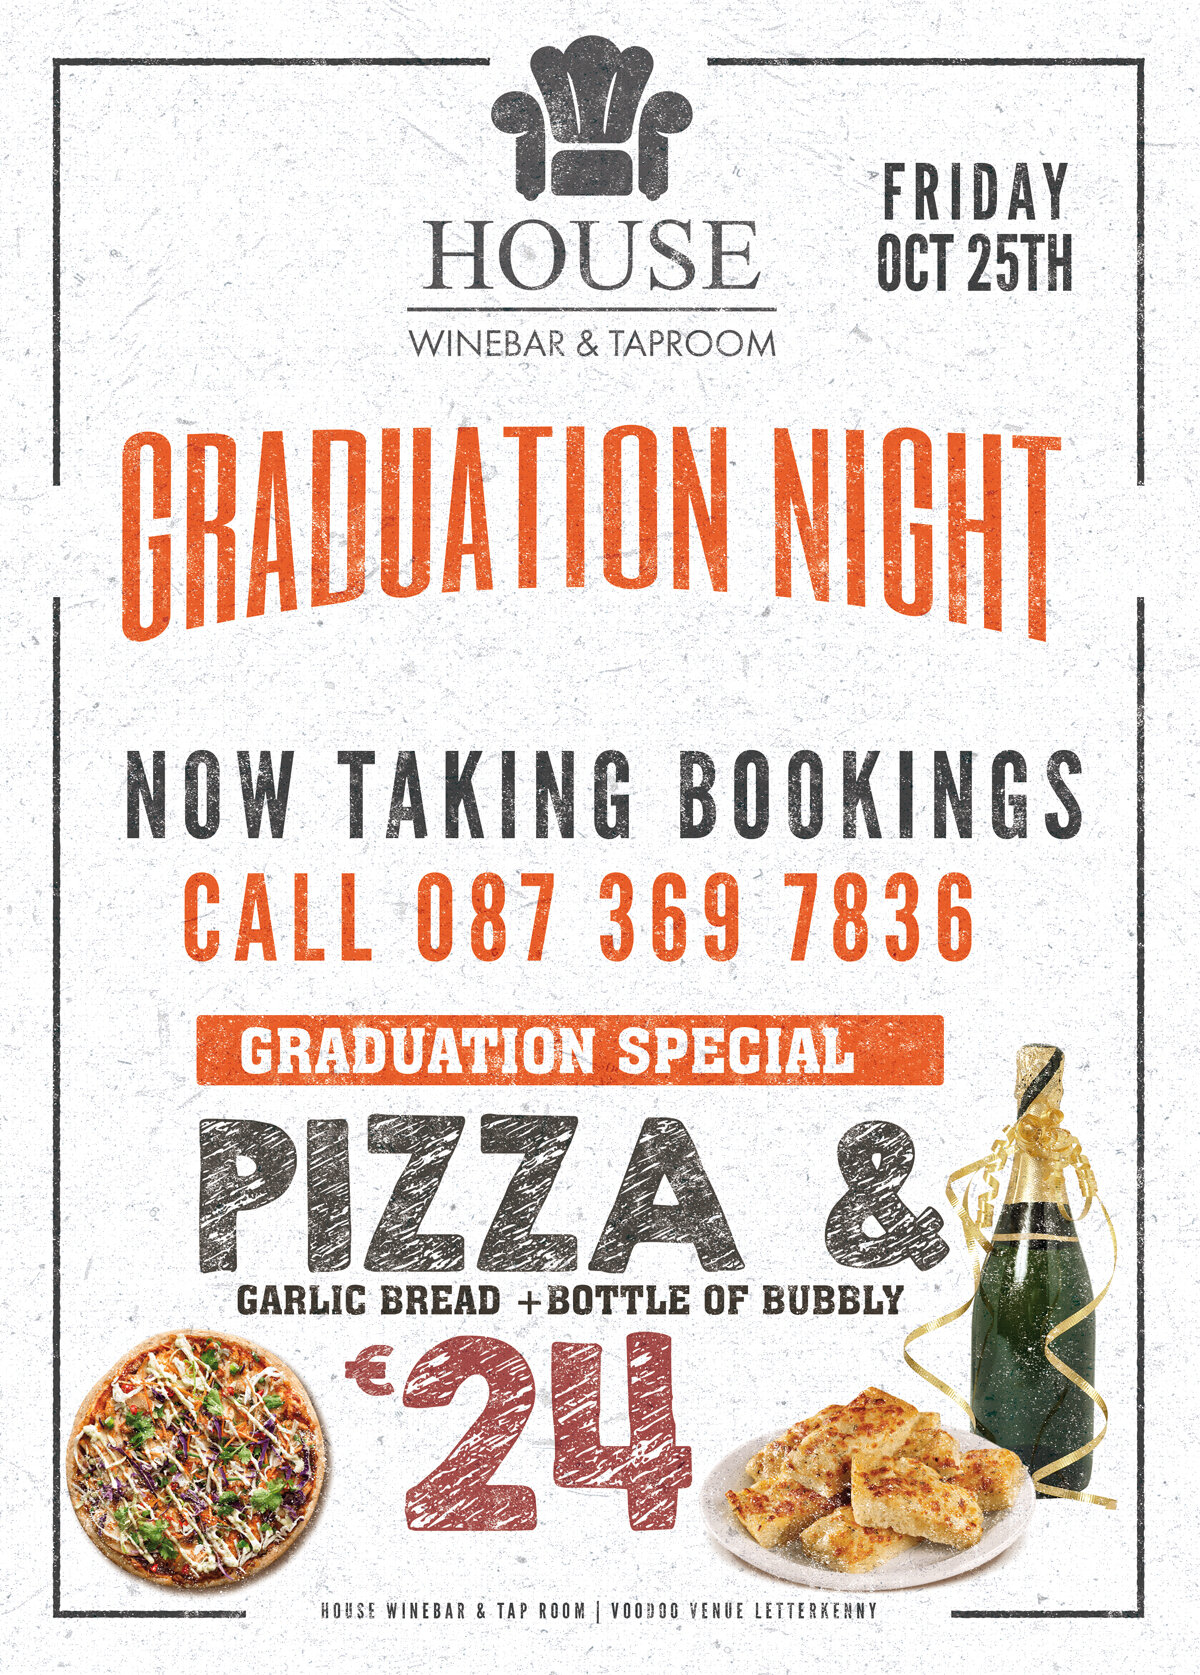 house-graduation-deal-oct-25-2019.jpg